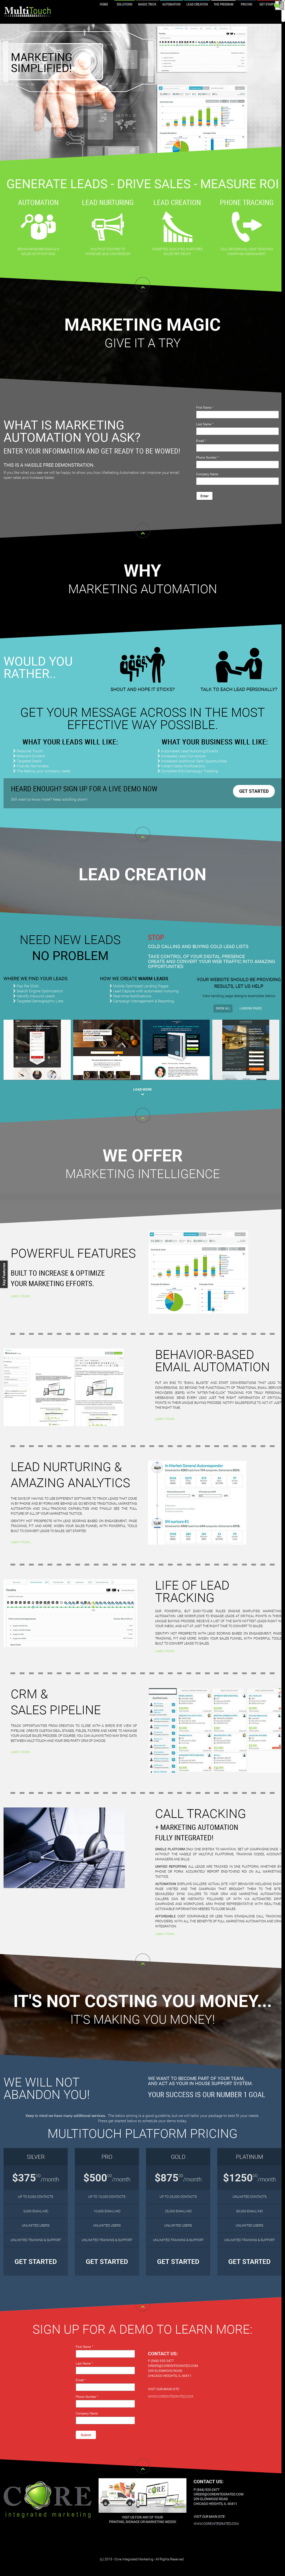 9 Landing Pages That Pissed Me Off And What Id Do To Fix Them Think I Him Pics 1 Multitouch